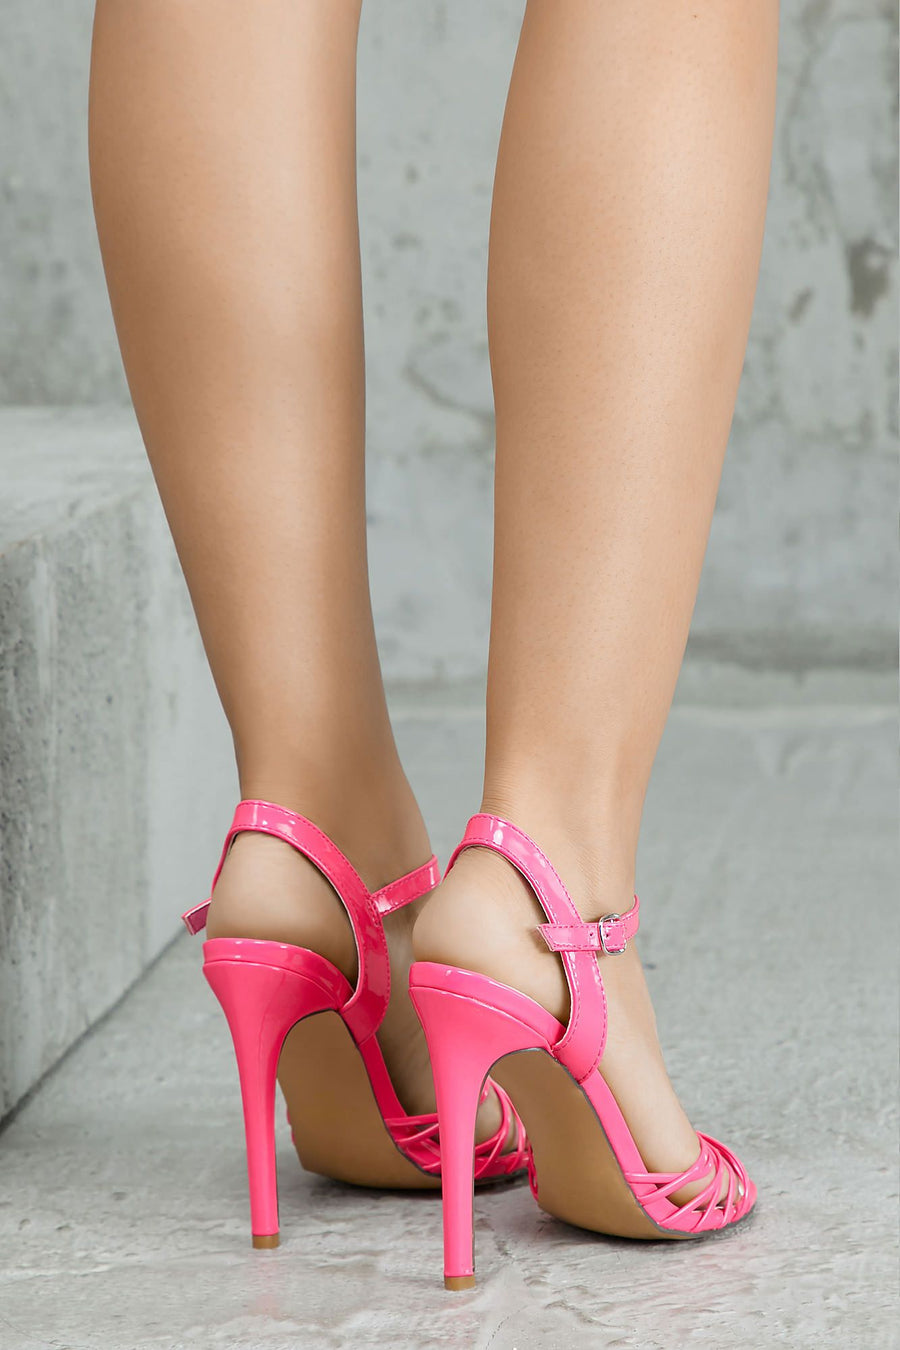 Stop And Pay Attention Heels (Pink)